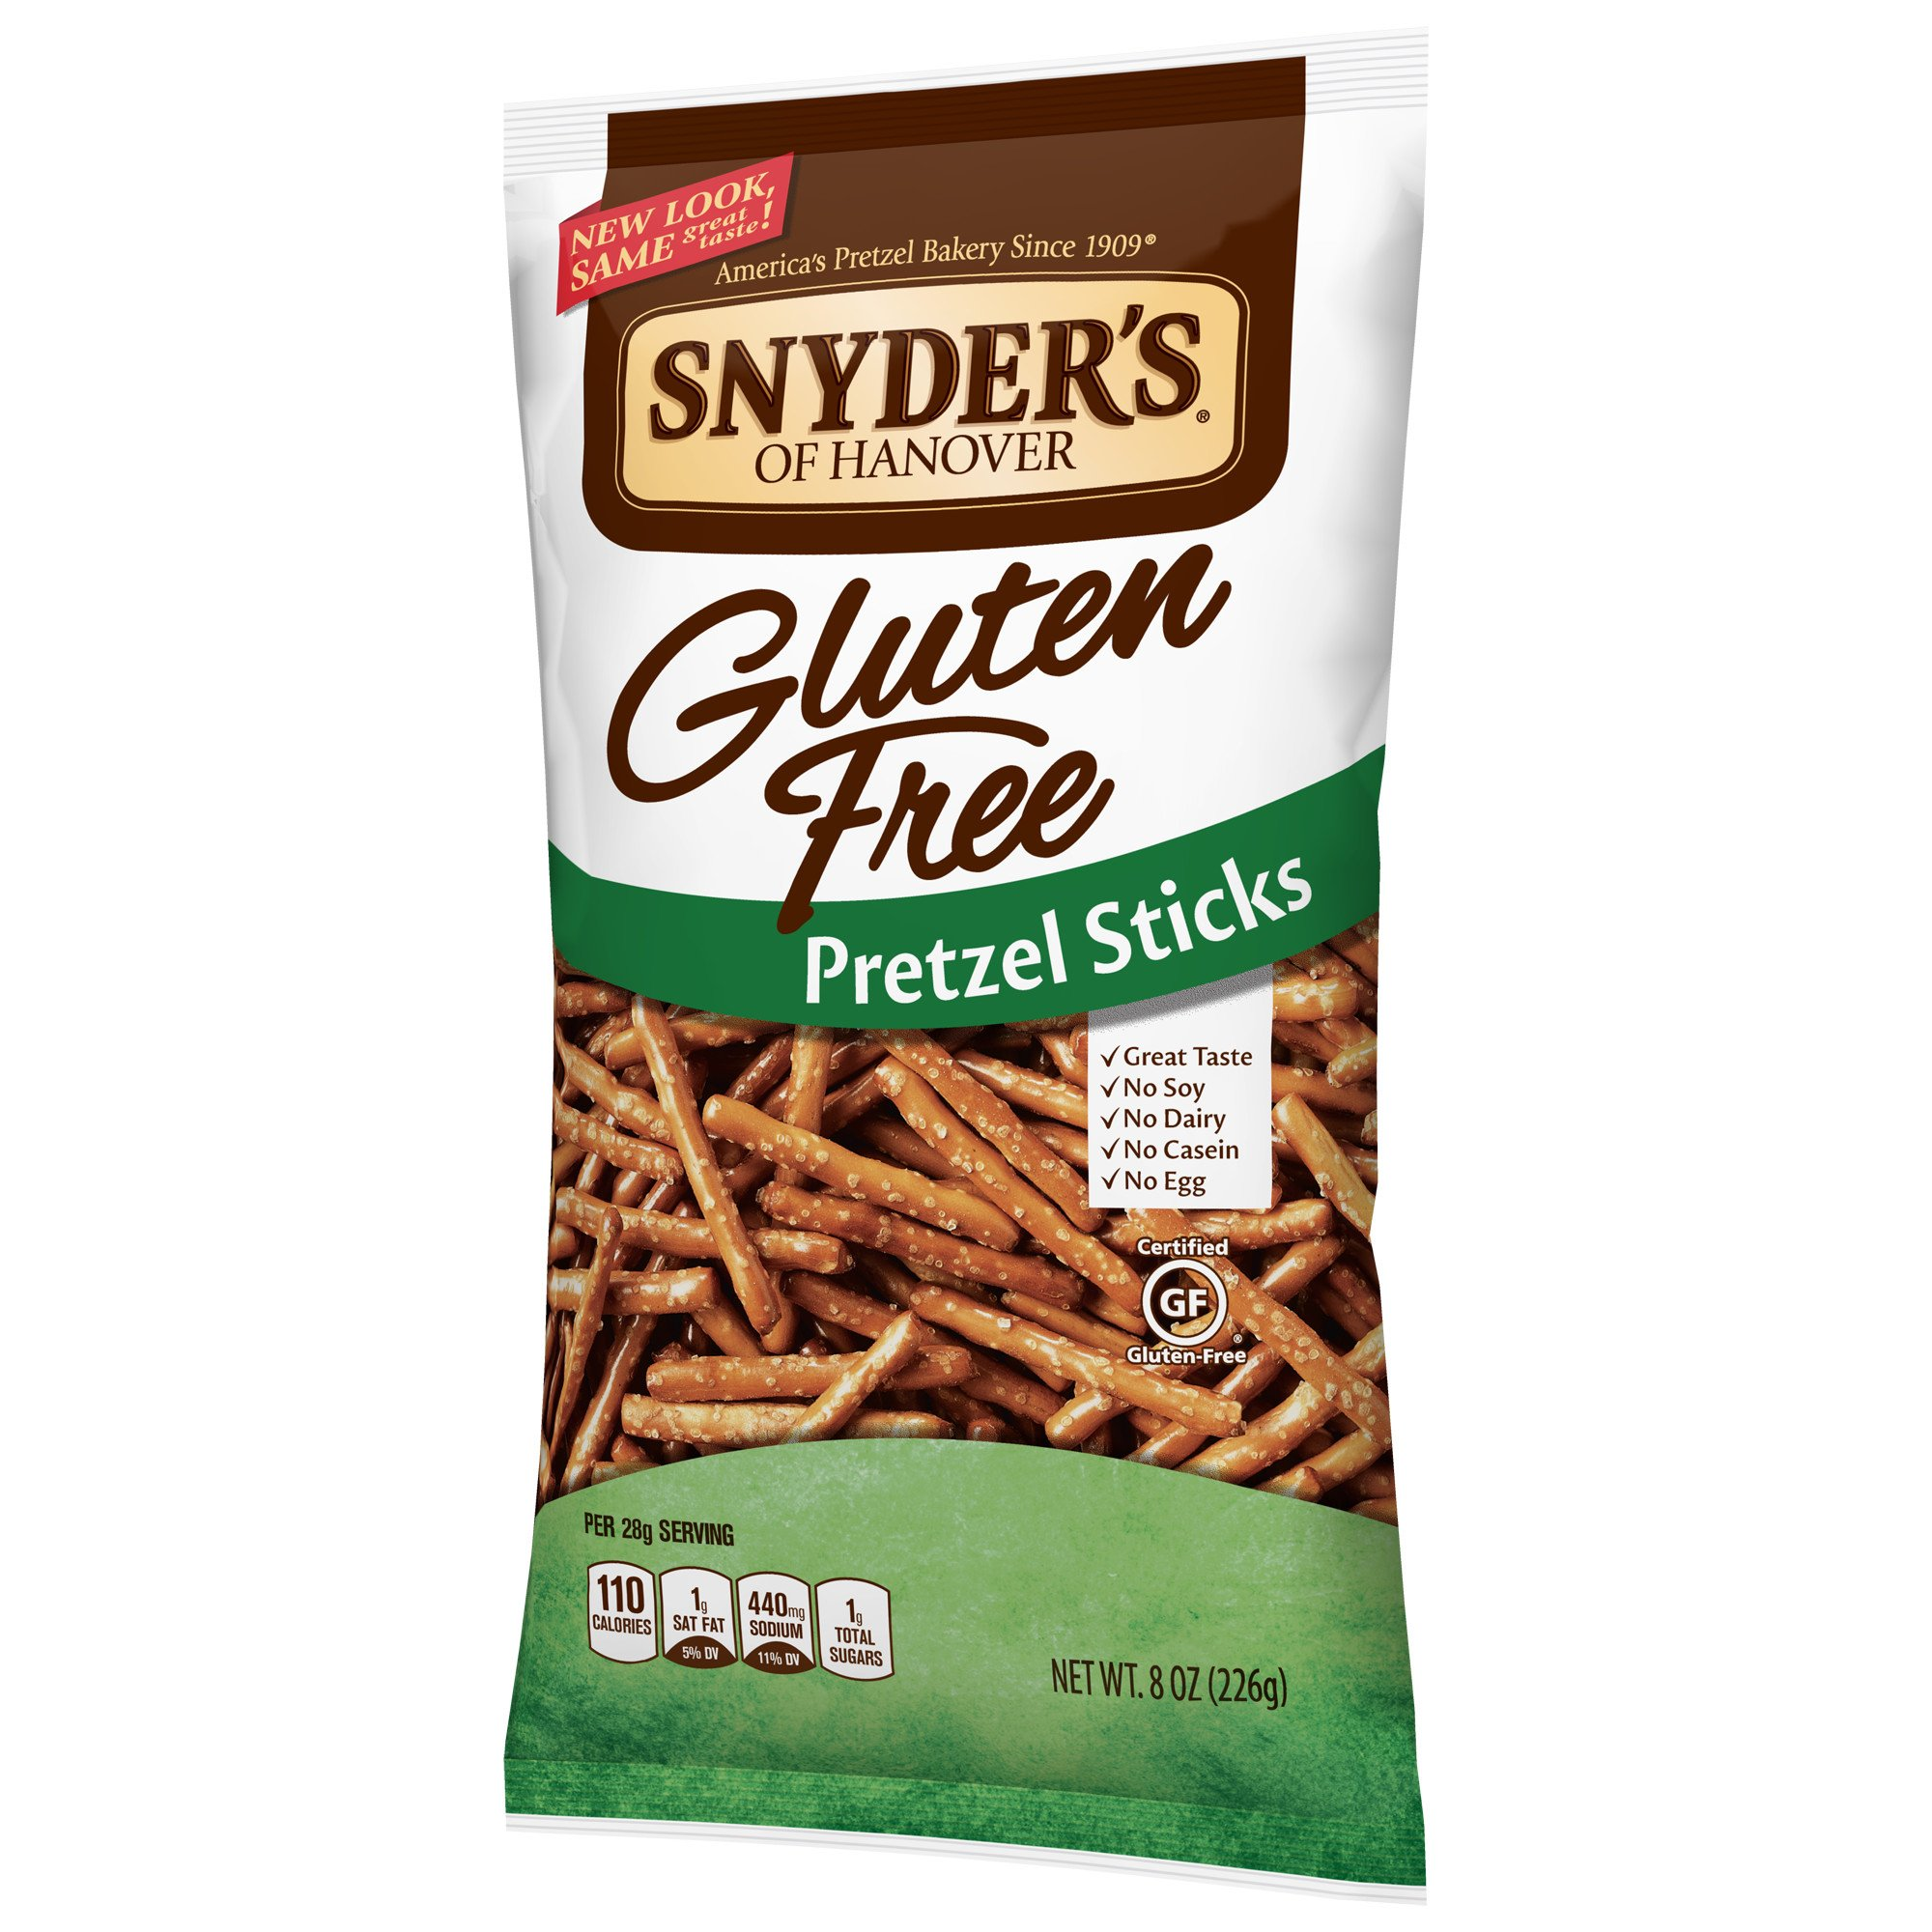 Snyder's of Hanover Gluten Free Pretzel Sticks, 8 Ounce (Pack of 12) by Snyder's of Hanover (Image #6)